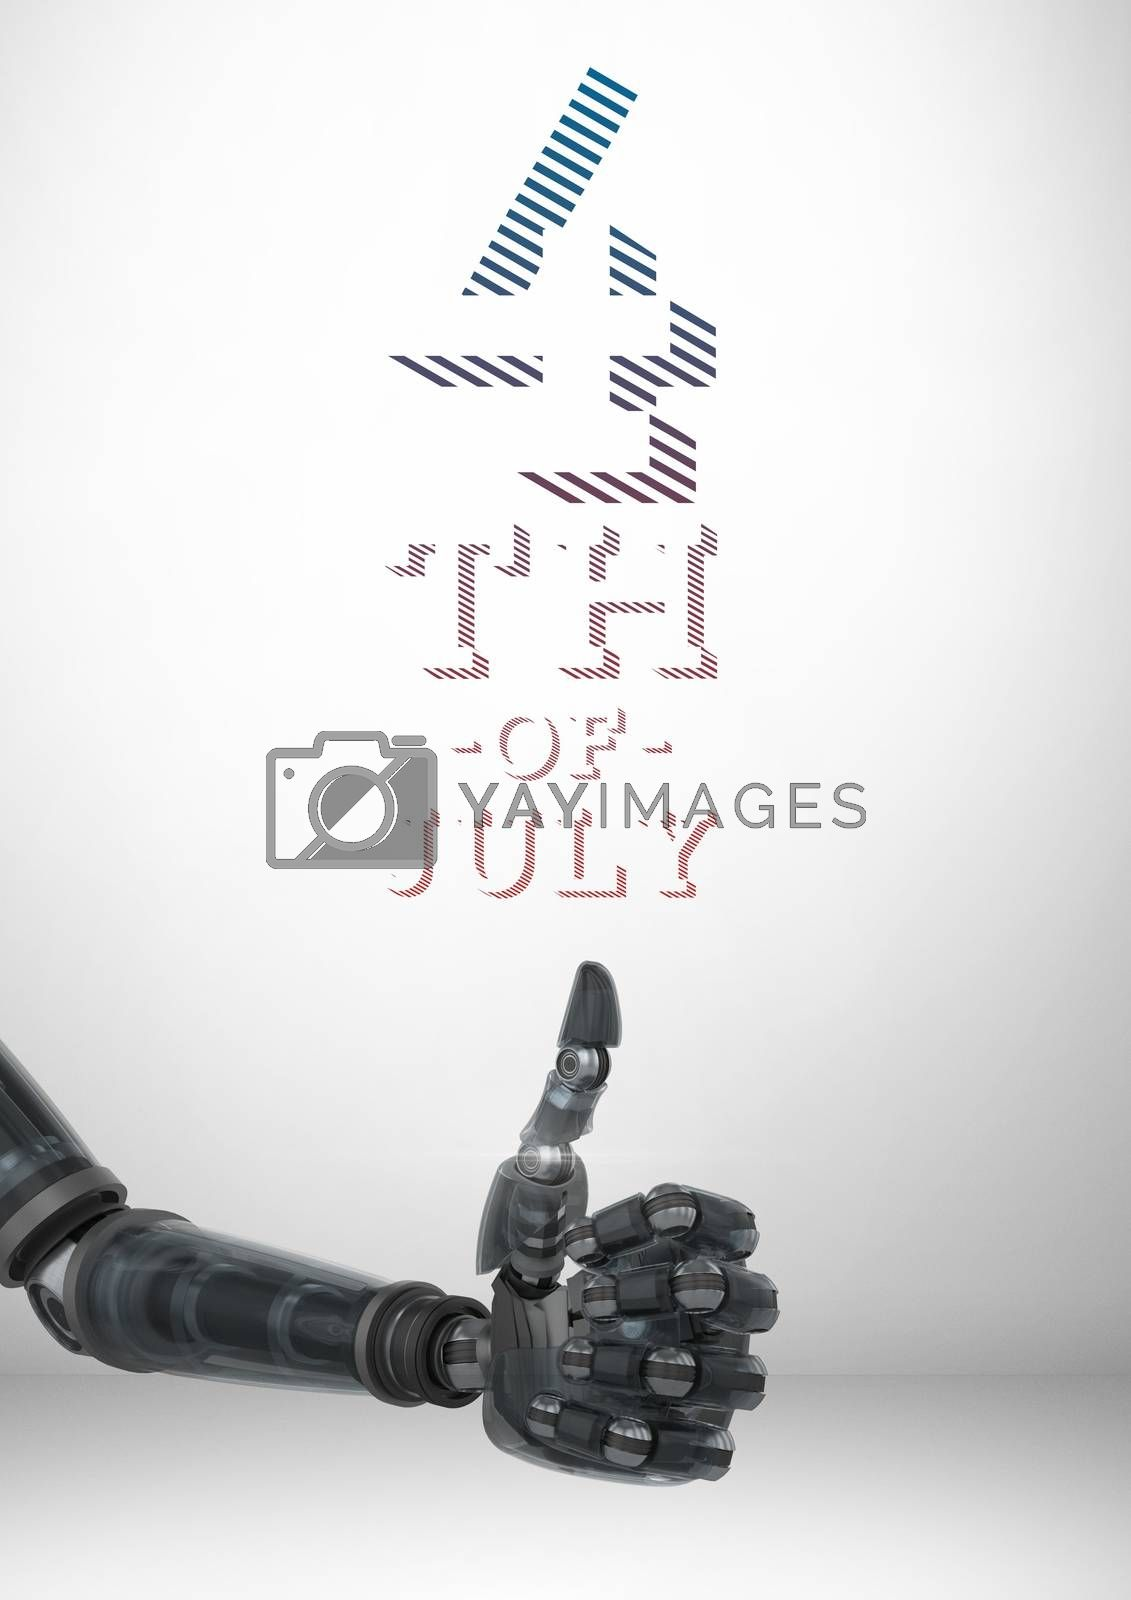 Digital composite of Composite image of robot with thumbs up for the 4th of july